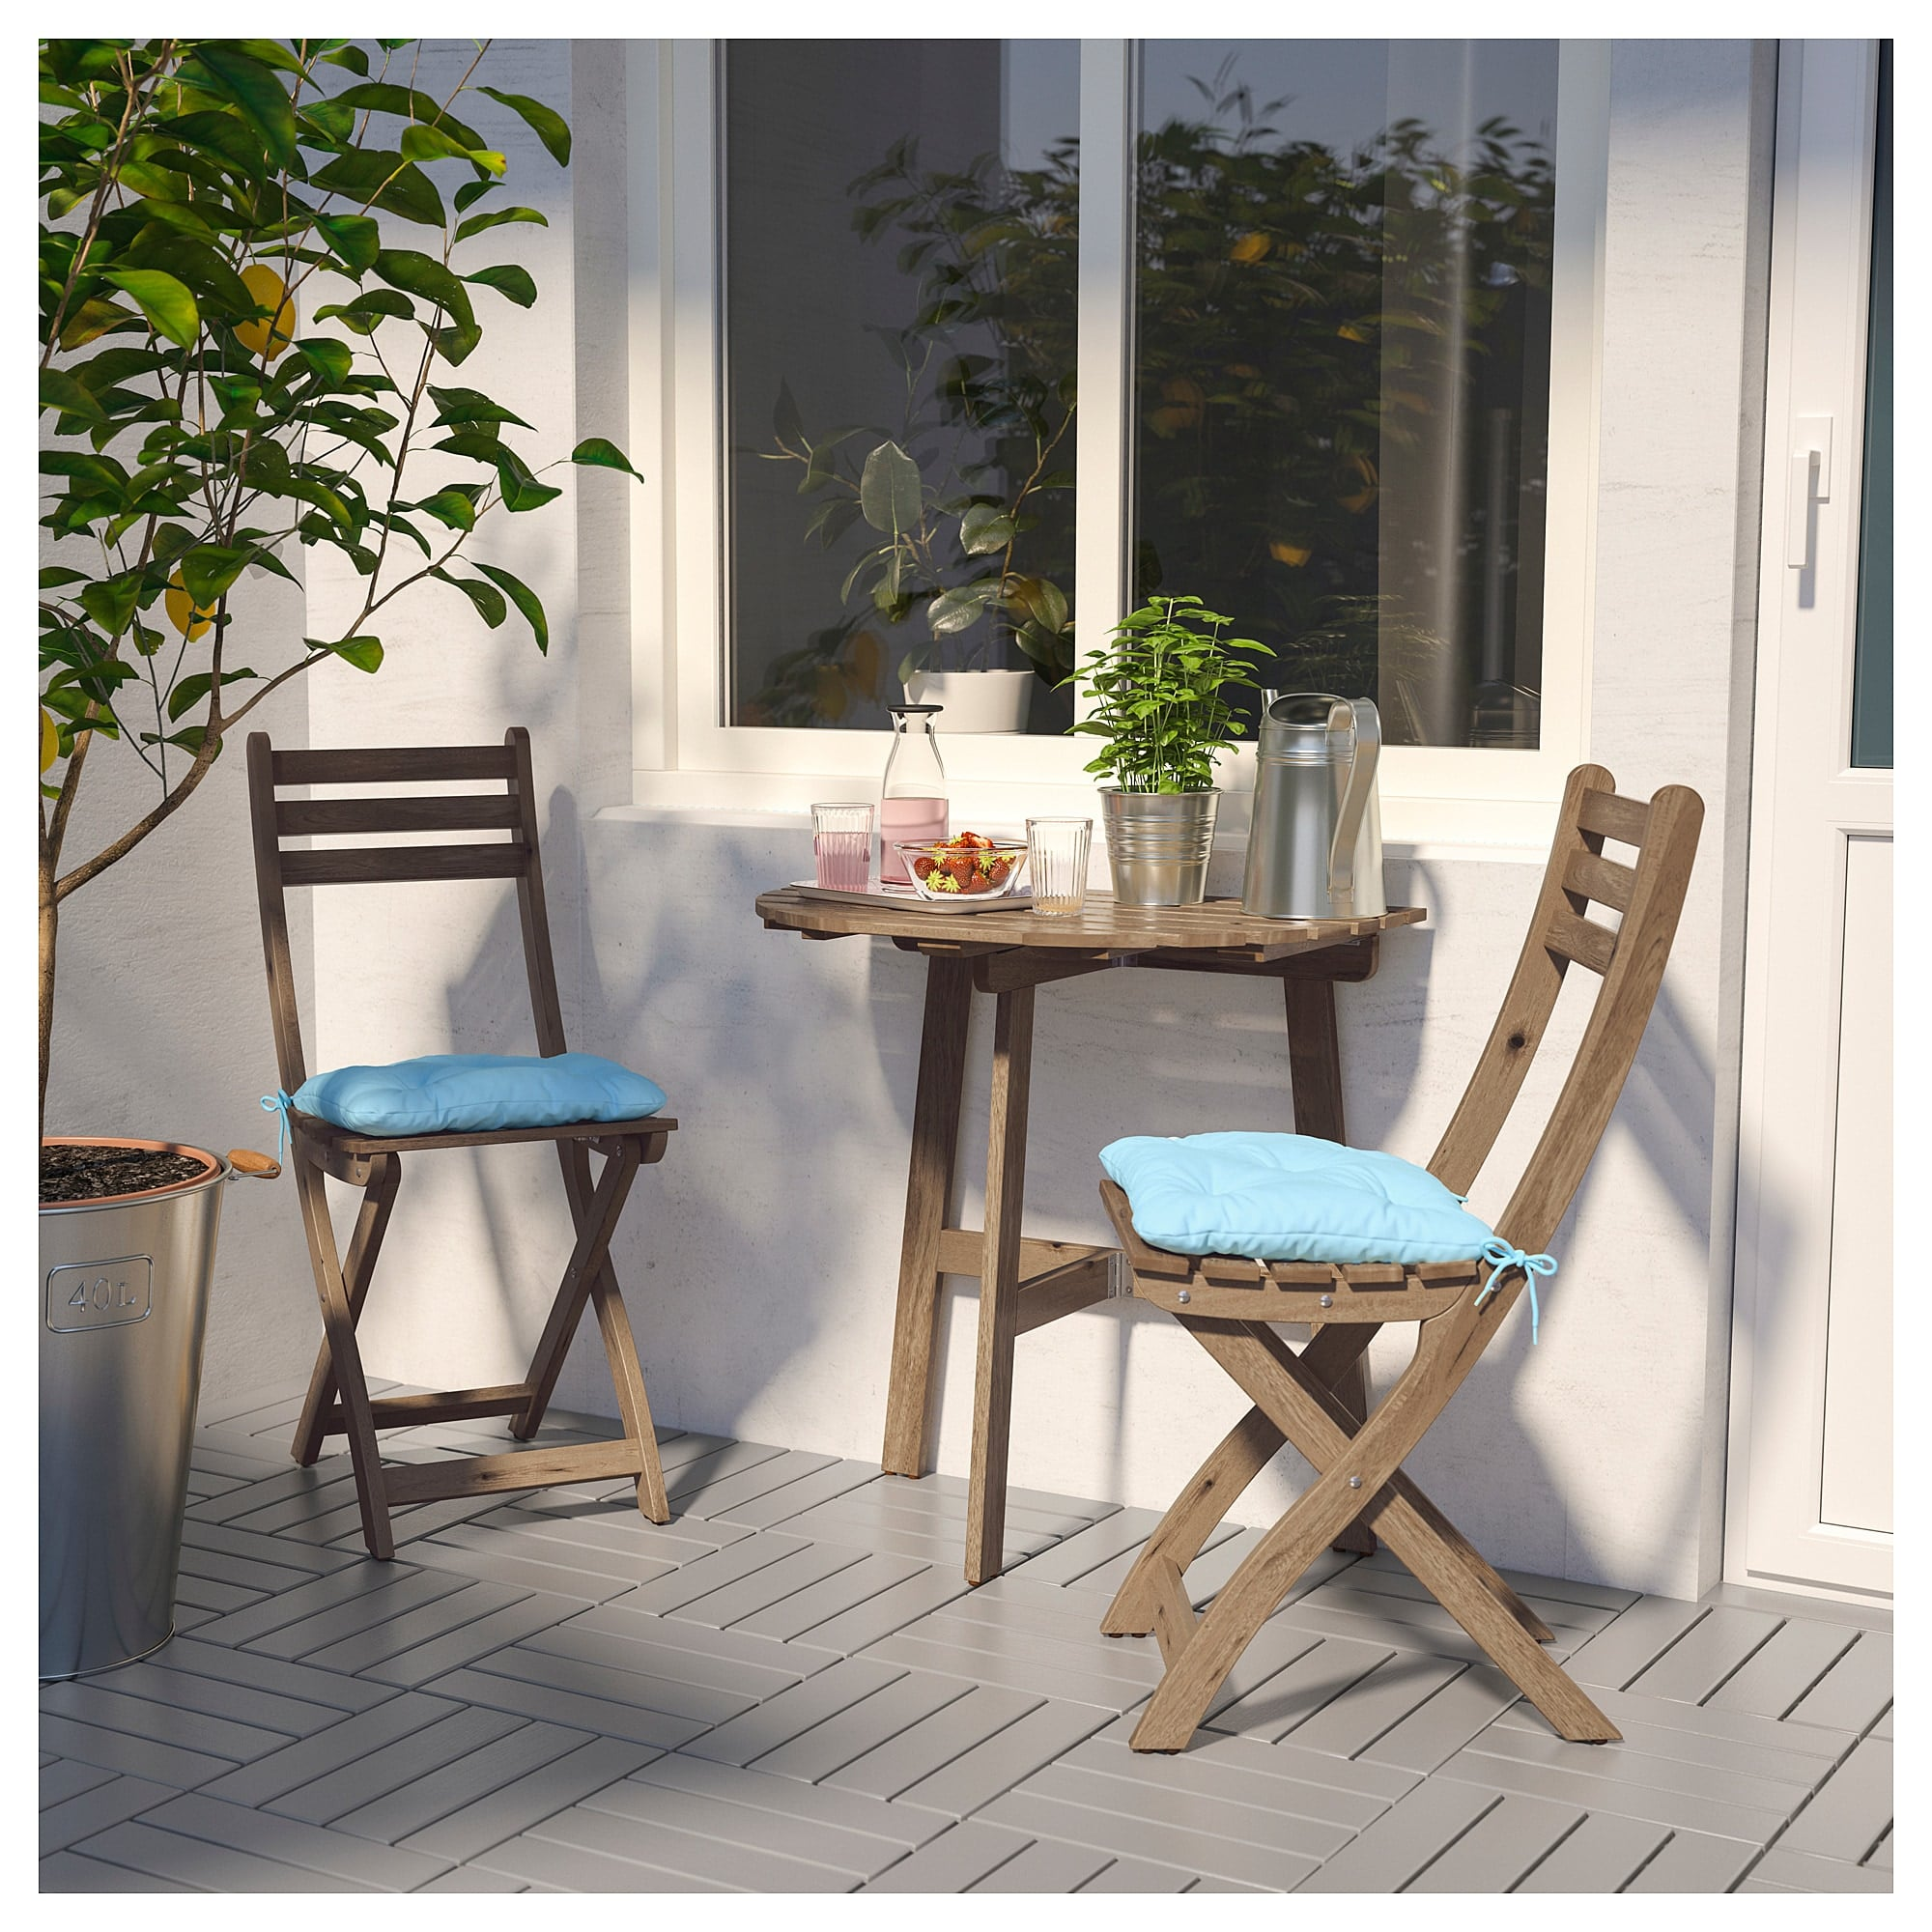 Askholmen Wall Table And Two Folding Chairs Small Patio Ikea Can Help In A Big Way With These Space Saving Furniture Picks Popsugar Home Photo 39